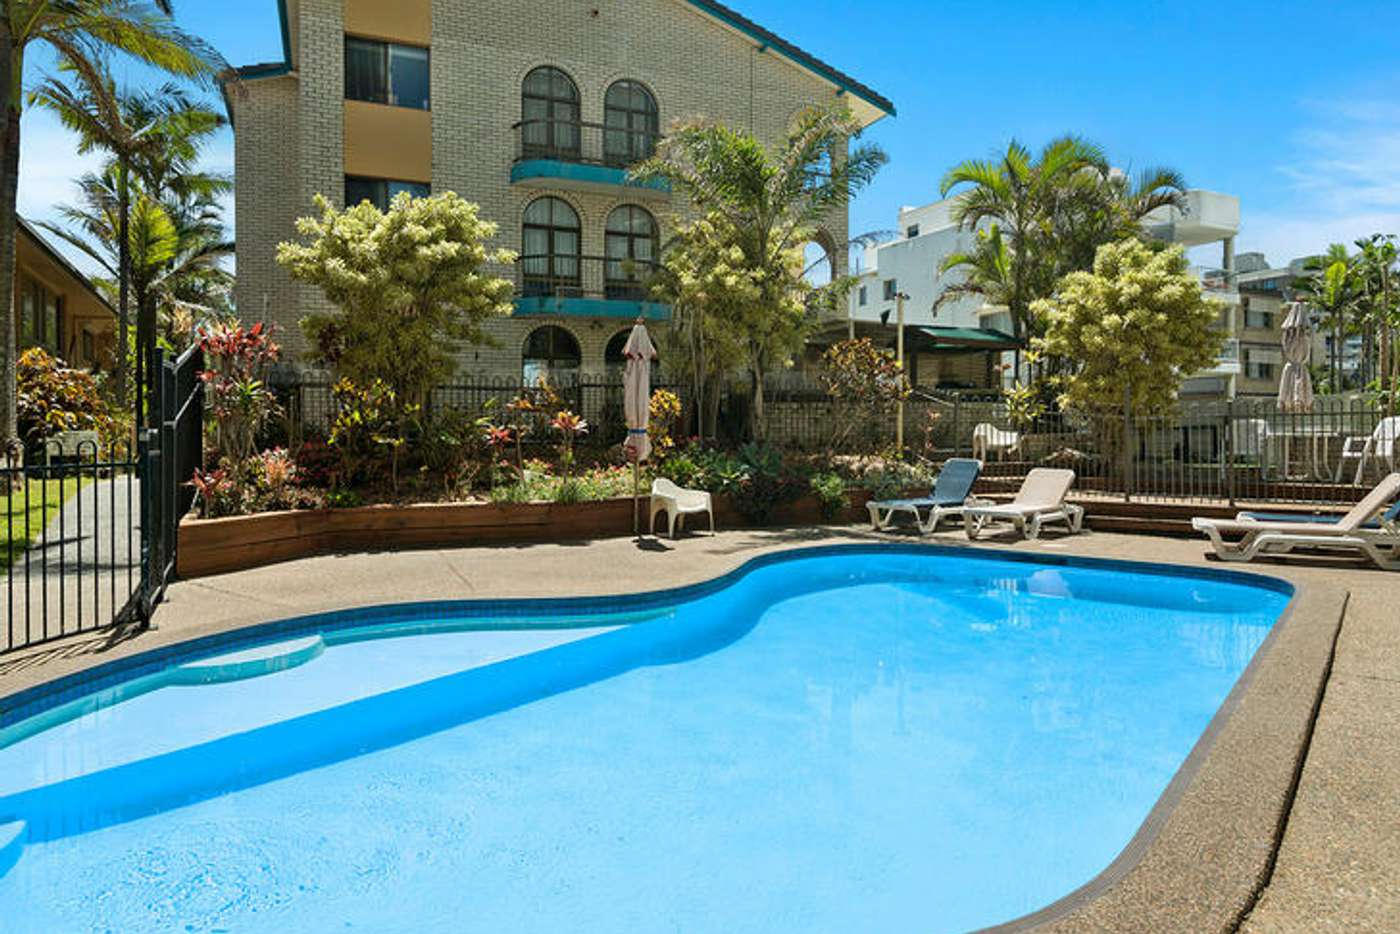 Main view of Homely apartment listing, 5/35 Old Burleigh Road, Surfers Paradise QLD 4217